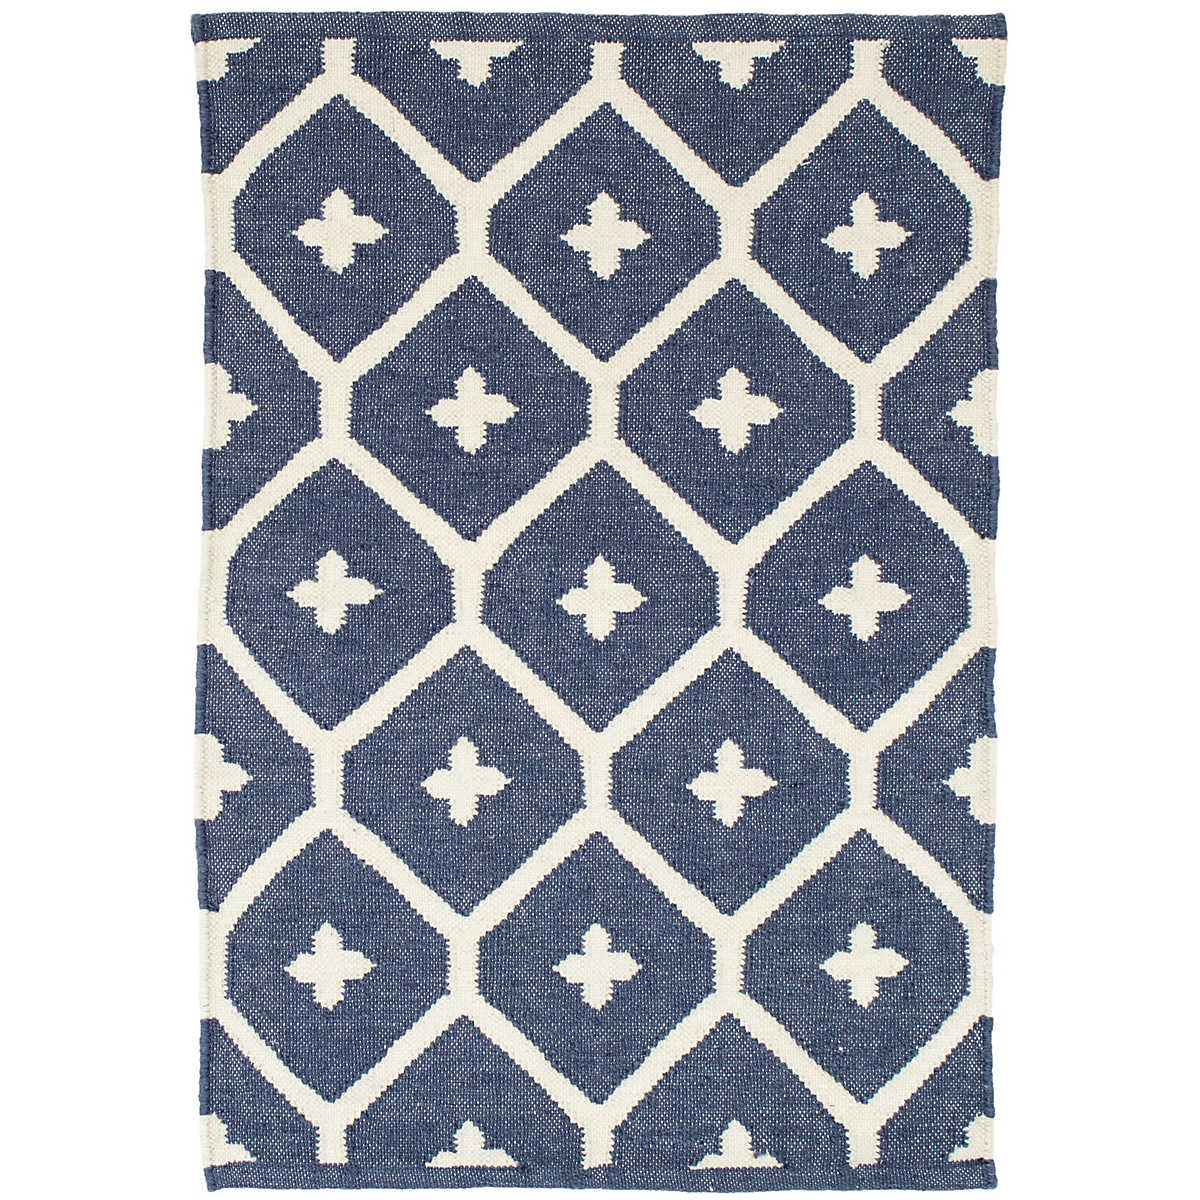 Blue Outdoor Rug 9x12: Elizabeth Navy Indoor/Outdoor Rug